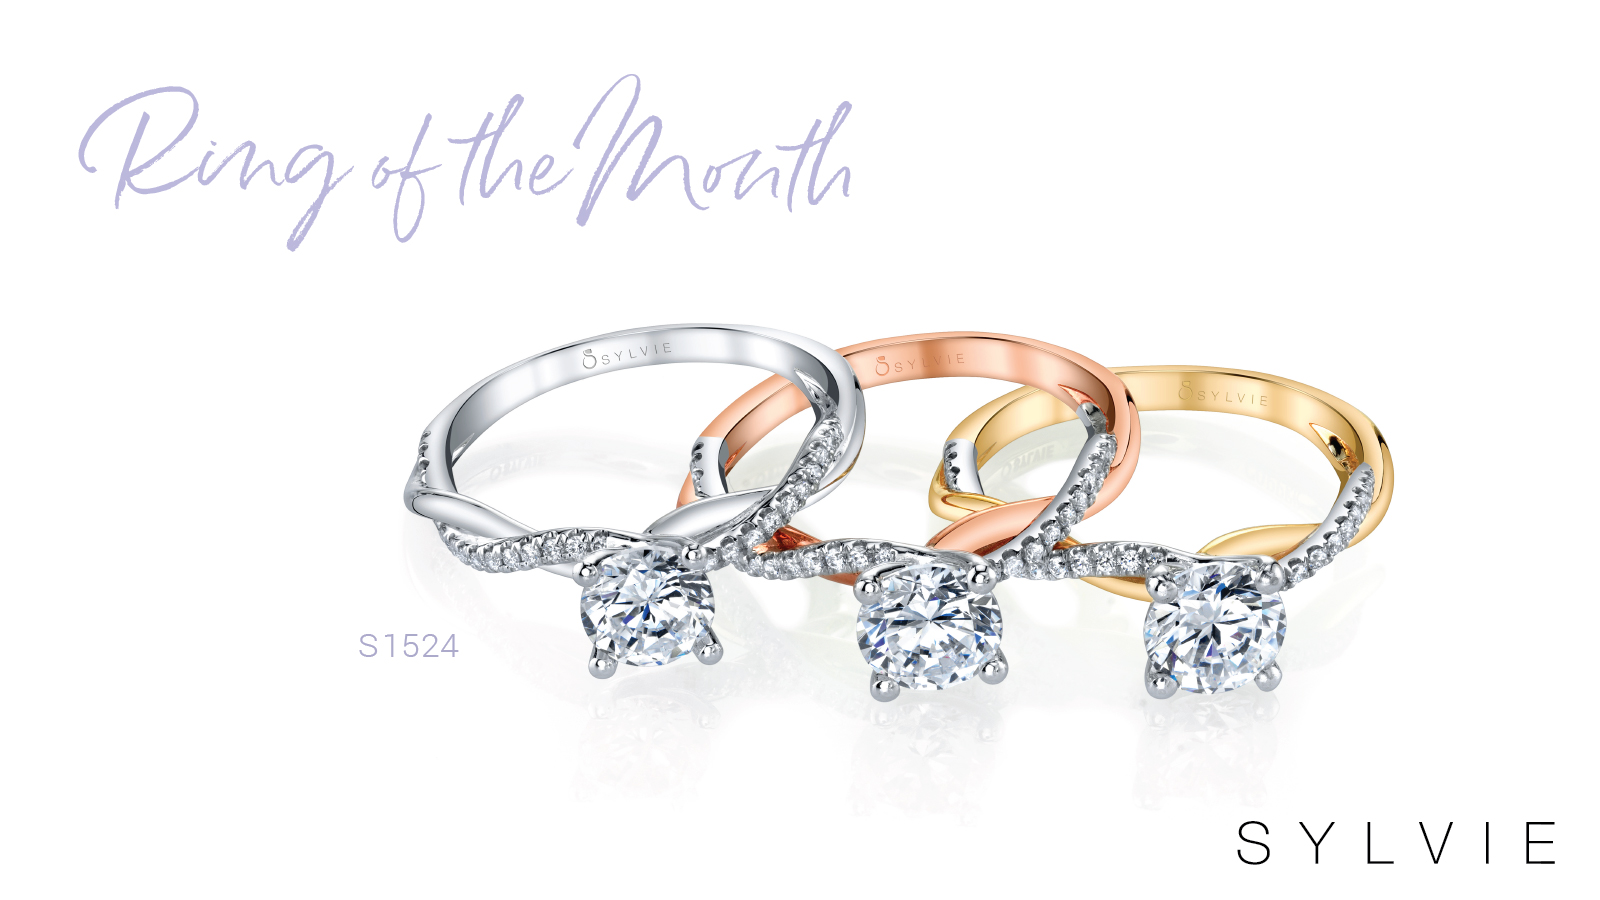 Sylvie's Ring of the Month - Spiral Solitaire Engagement Ring